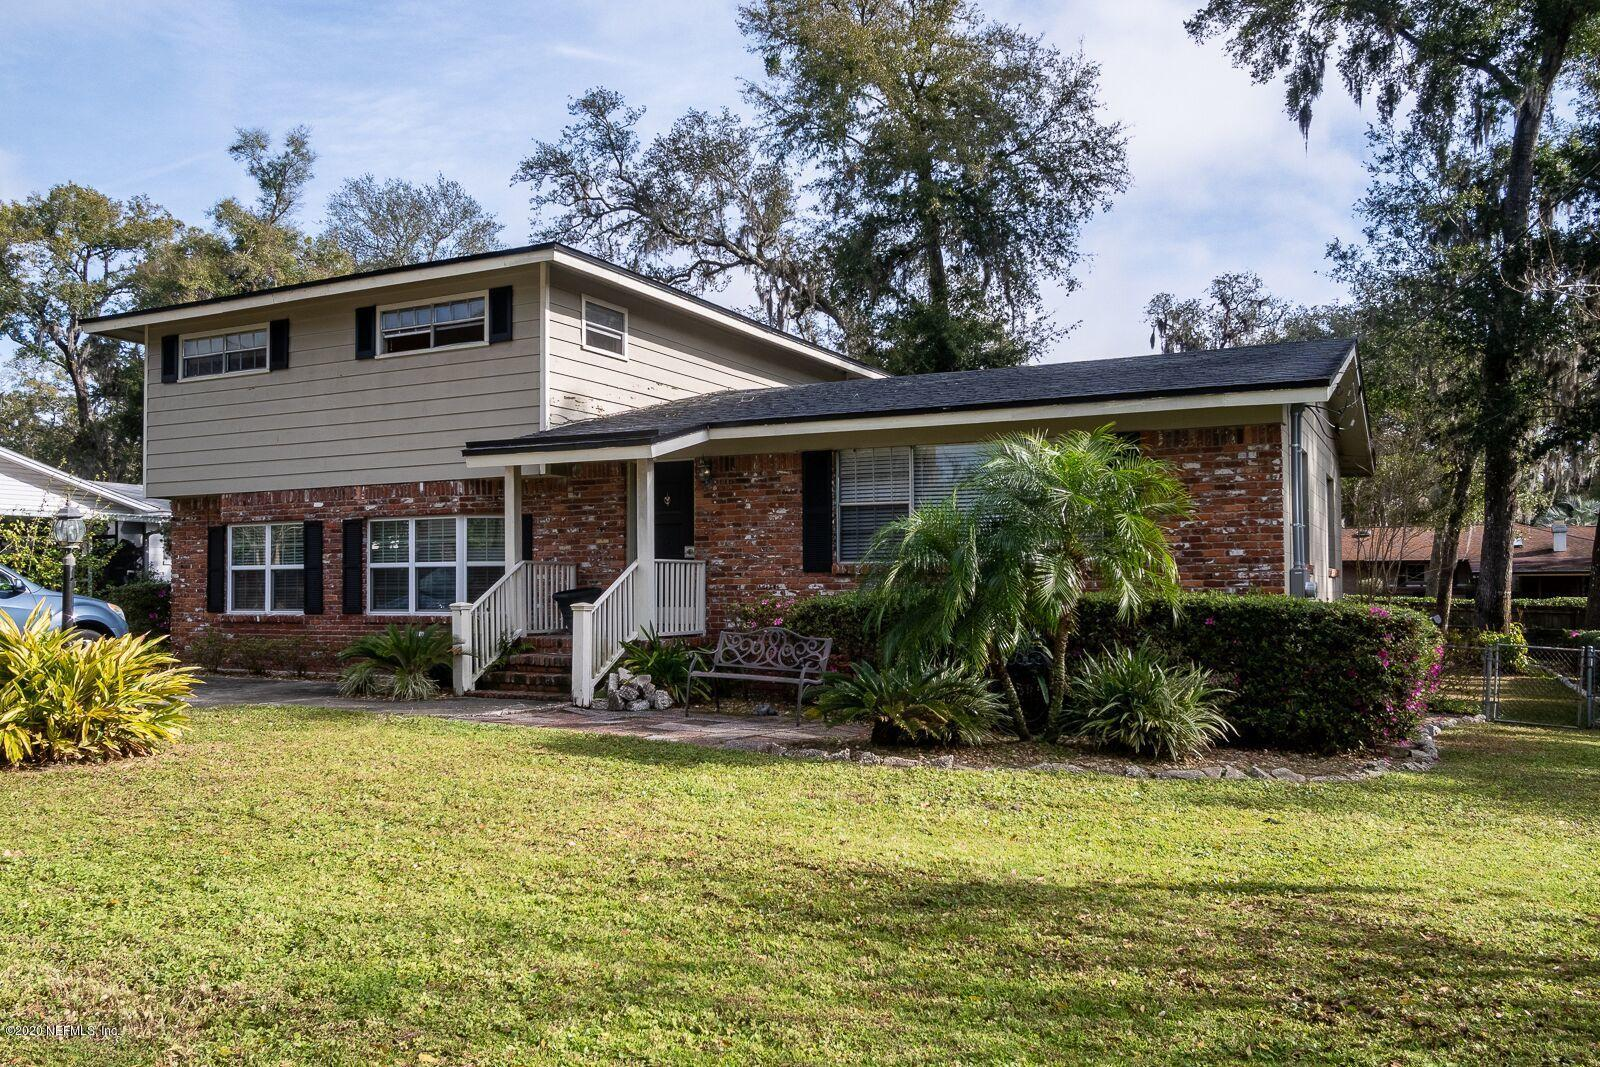 2865 WOODLAND, ORANGE PARK, FLORIDA 32073, 3 Bedrooms Bedrooms, ,2 BathroomsBathrooms,Residential,For sale,WOODLAND,1038538